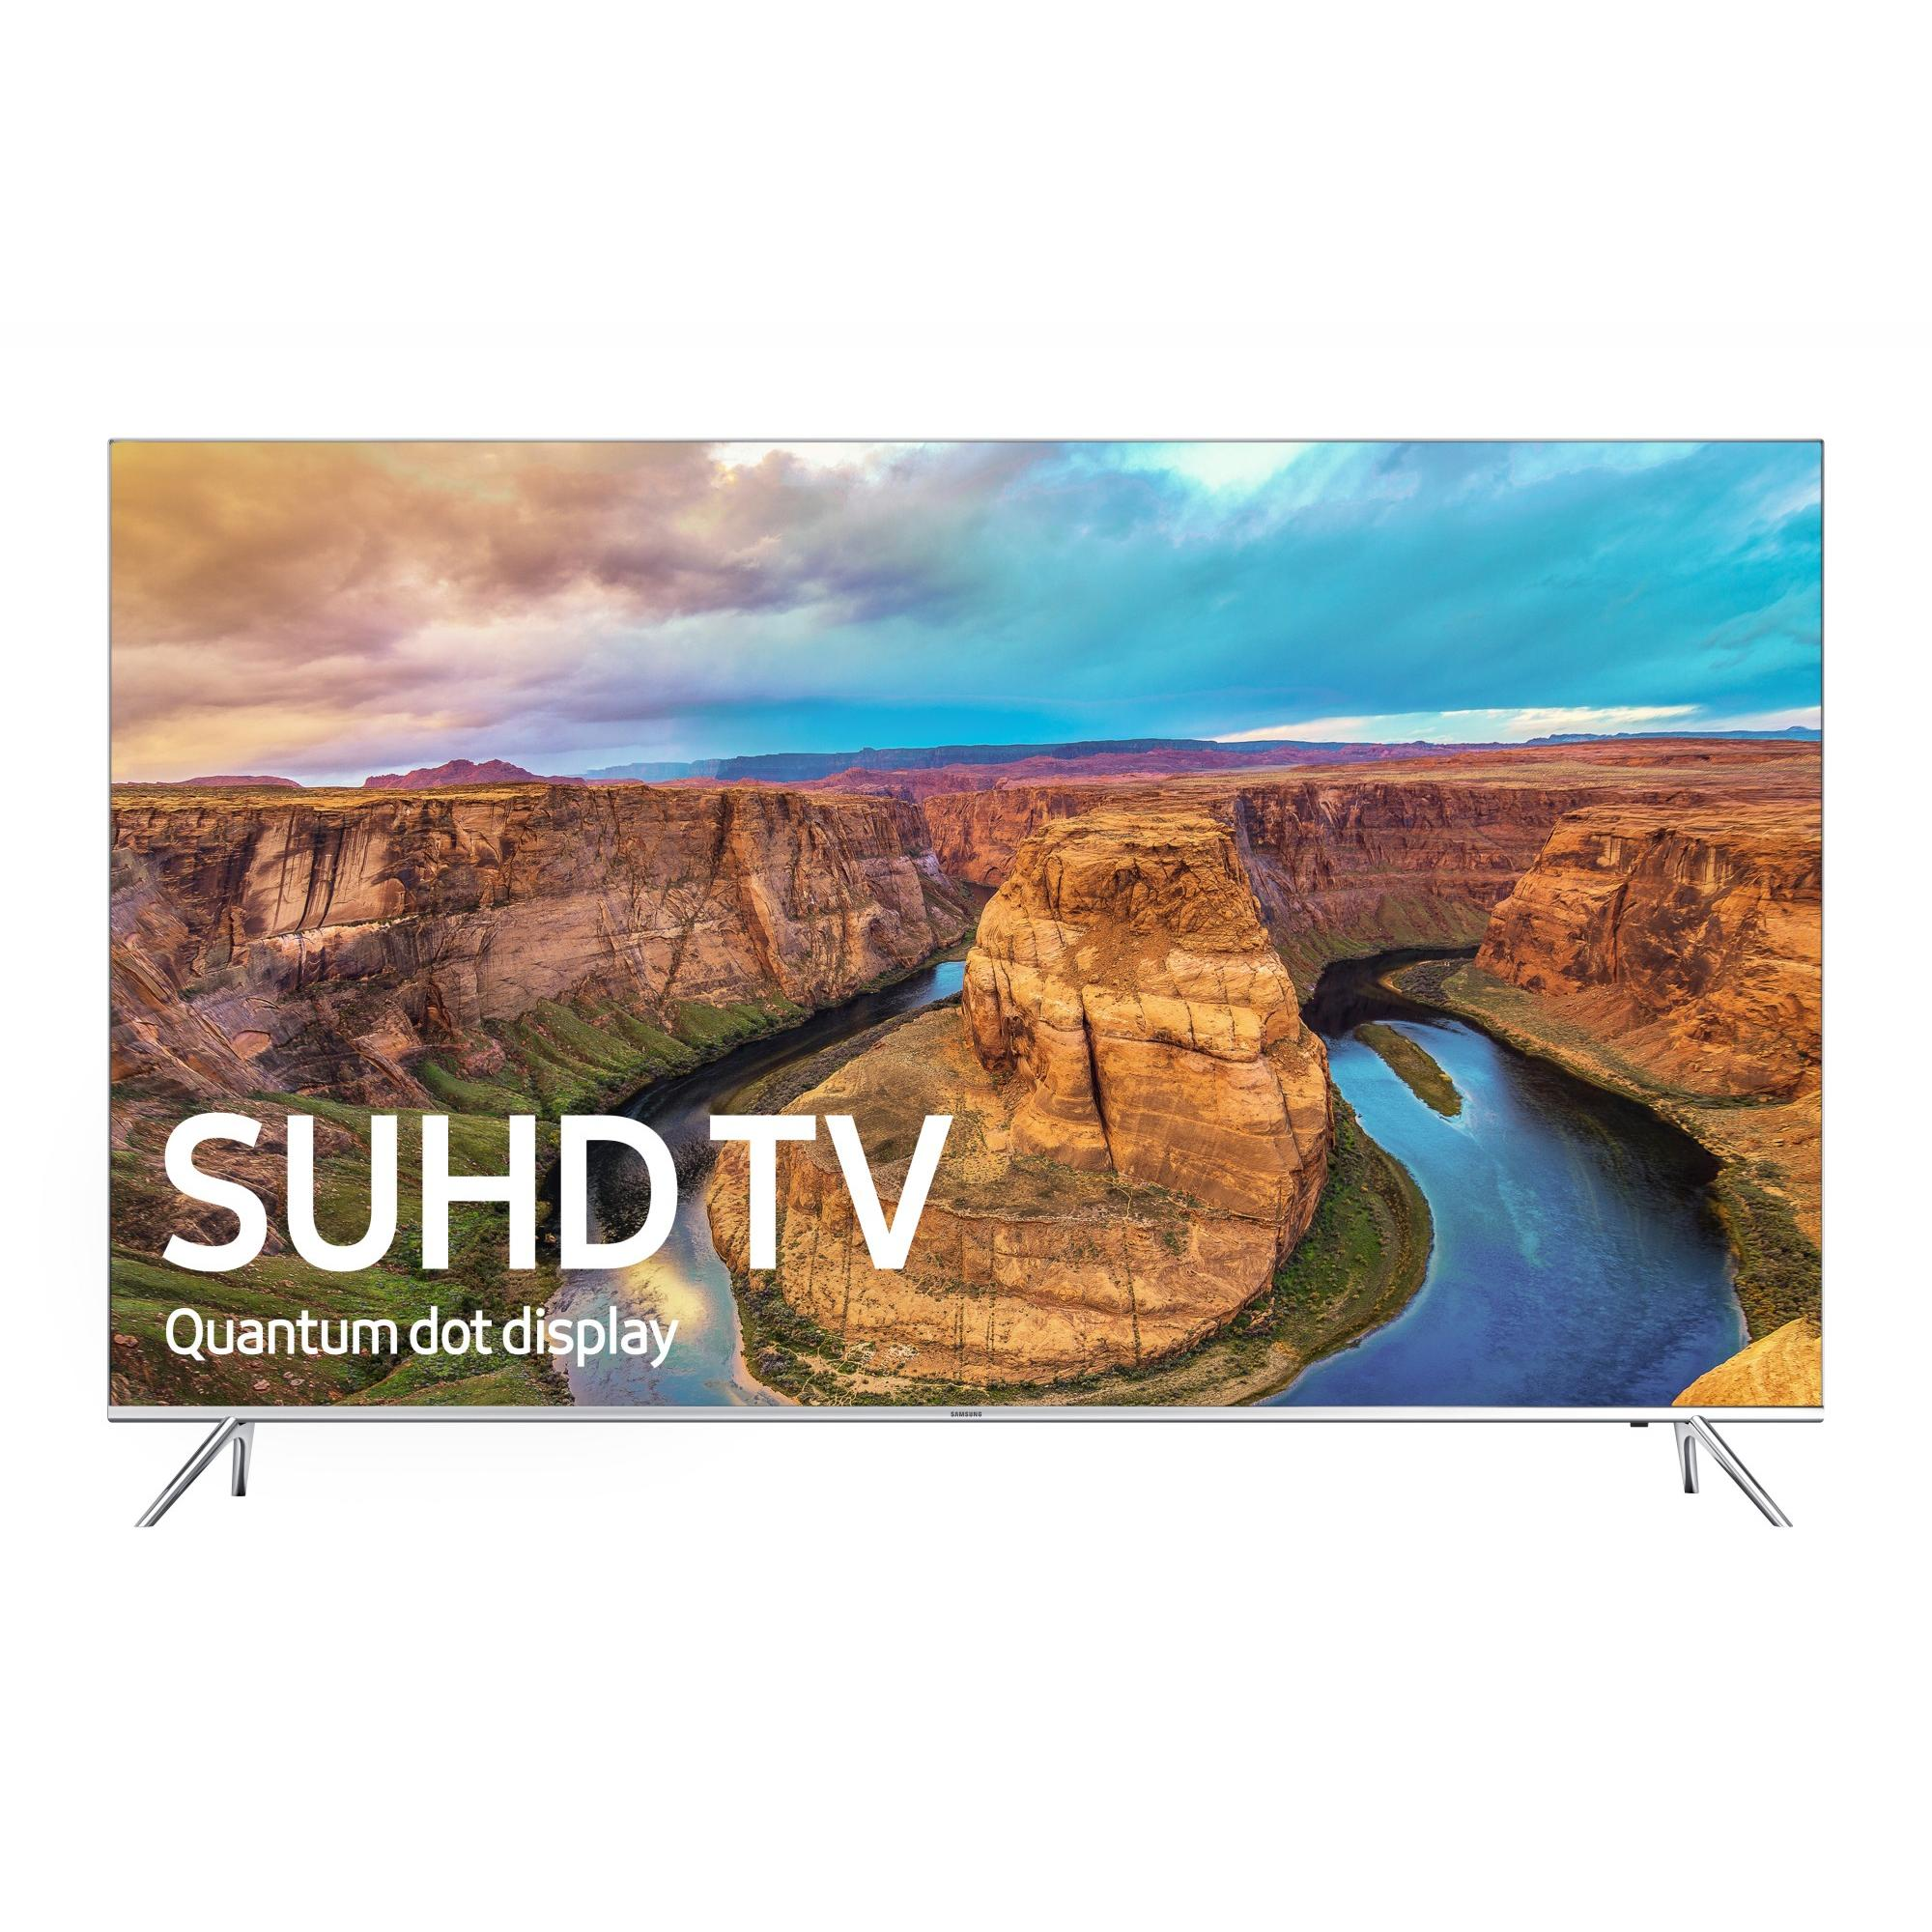 "SAMSUNG 55"" 8000 Series - 4K SUHD Smart LED TV - 2160p, 240MR (Model#: UN55KS8000)"